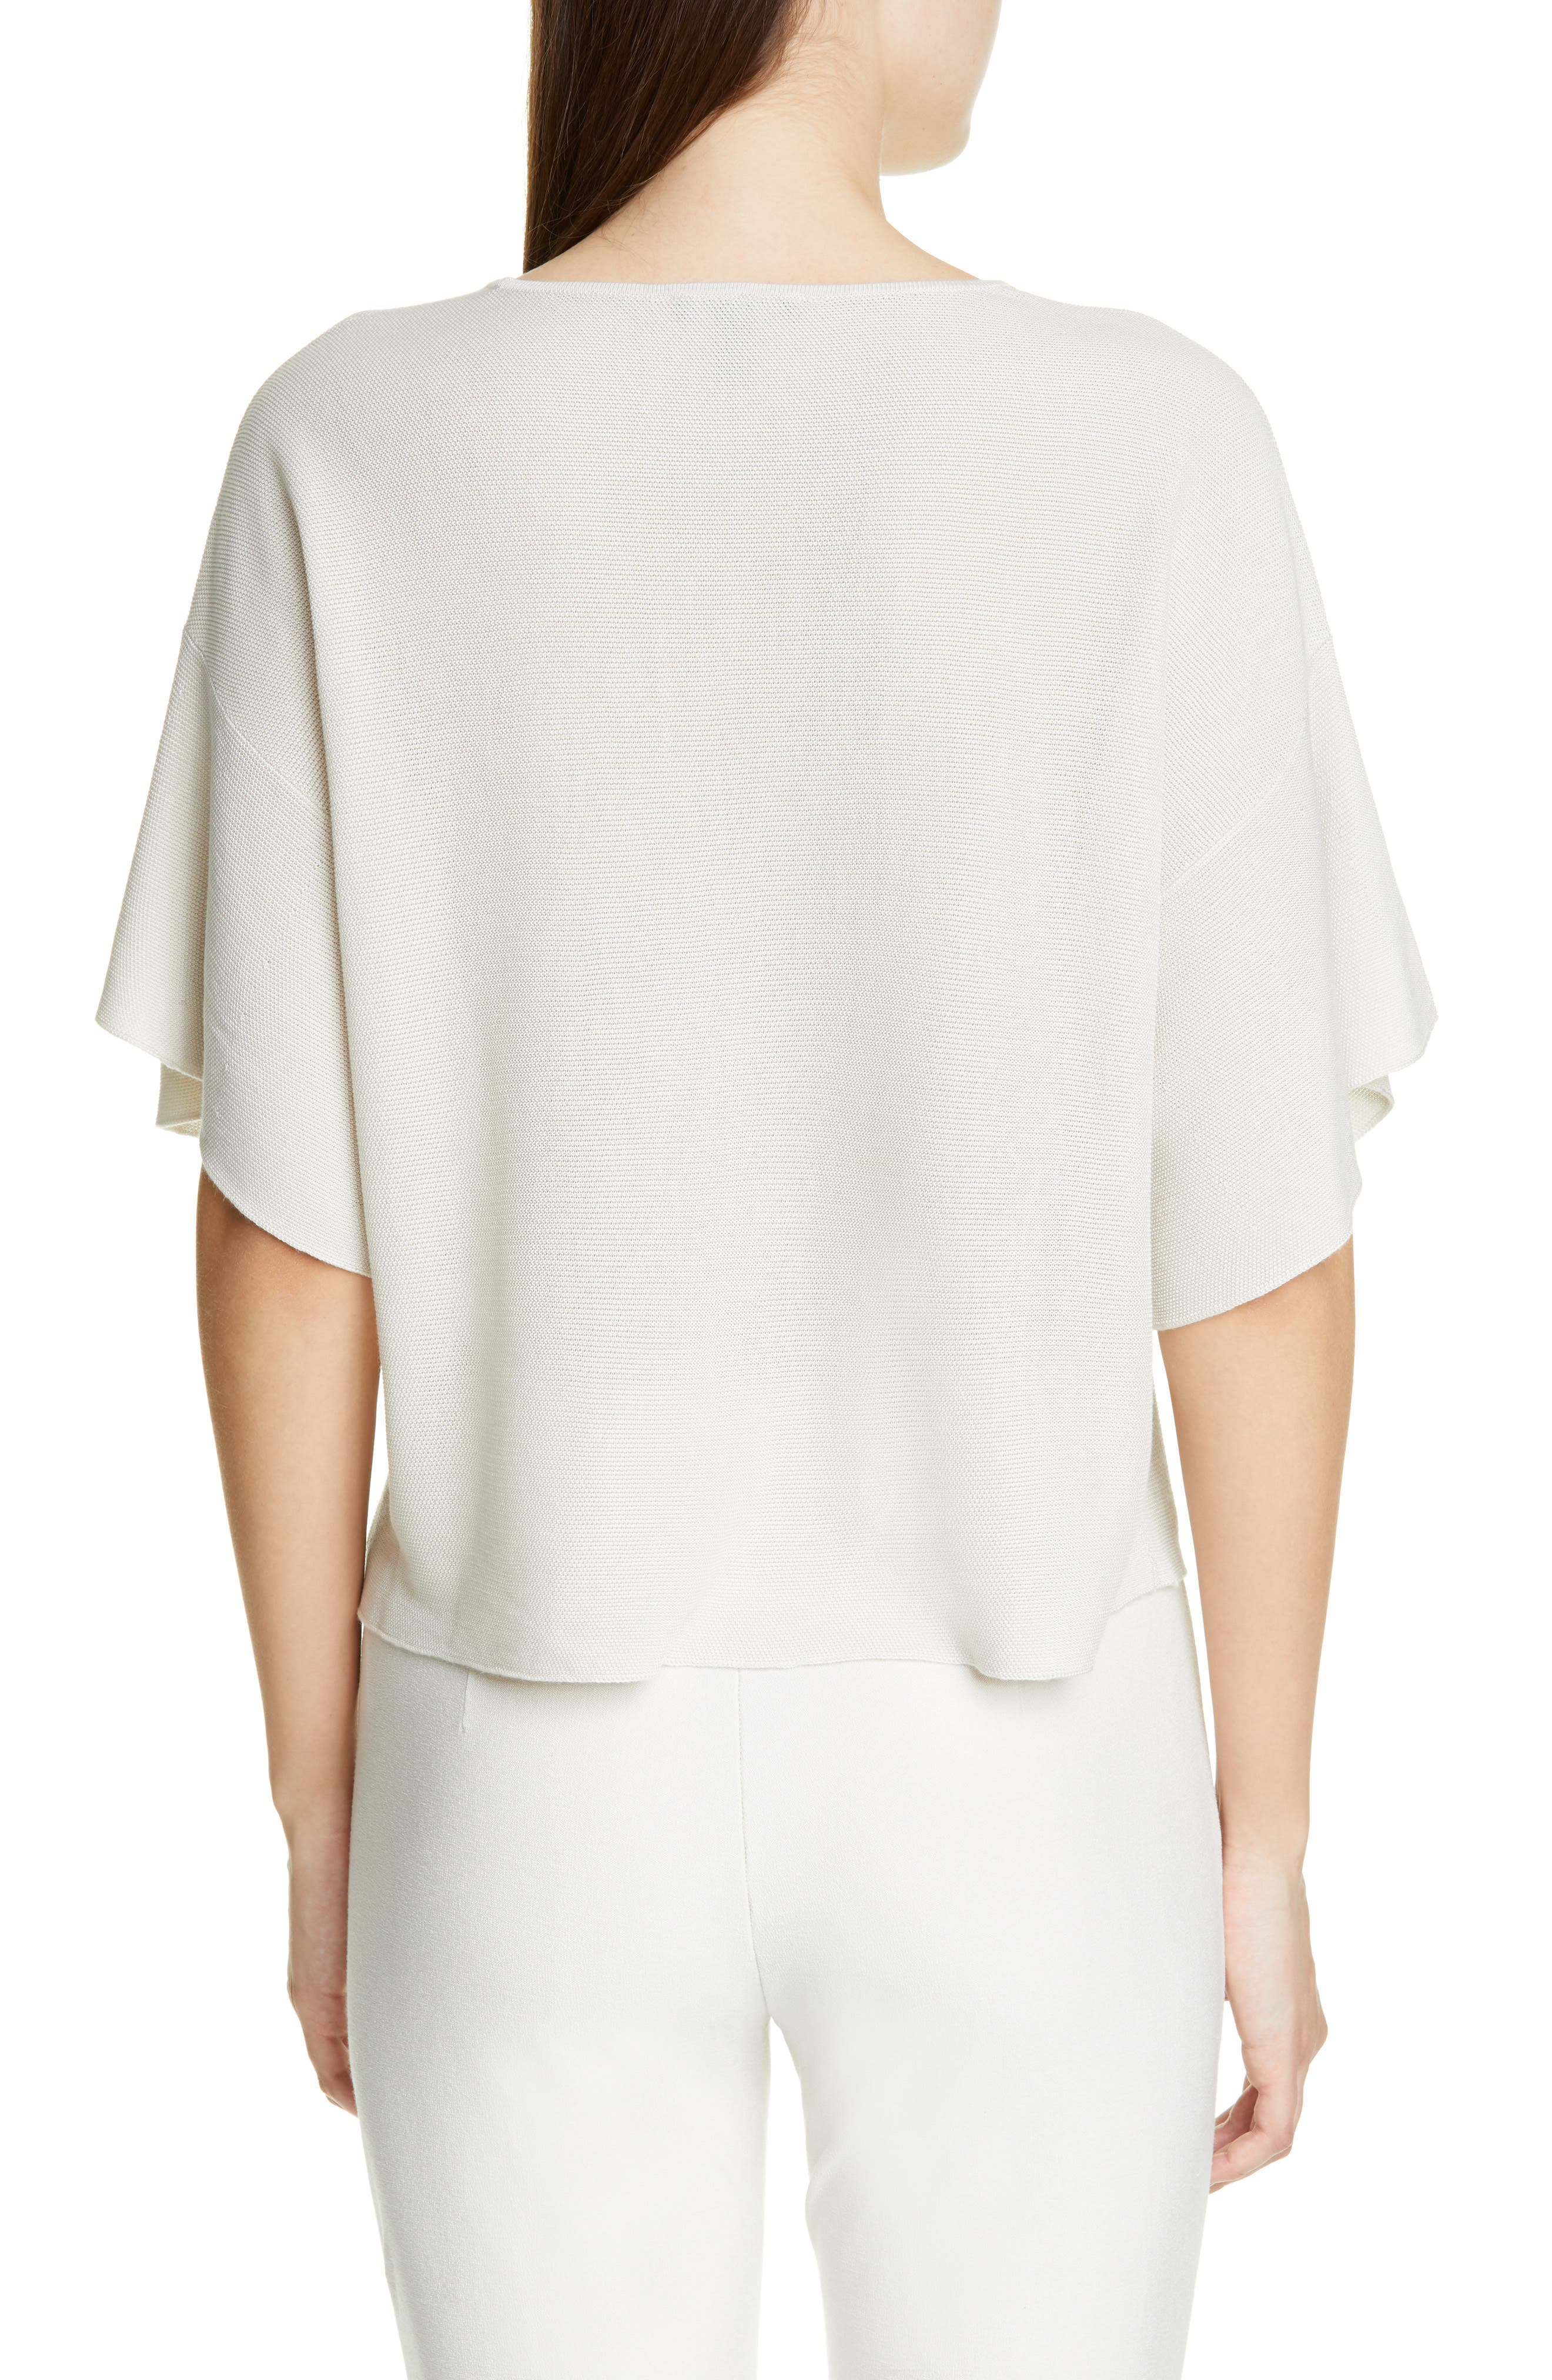 EILEEN FISHER, Elbow Sleeve Top, Alternate thumbnail 2, color, 100